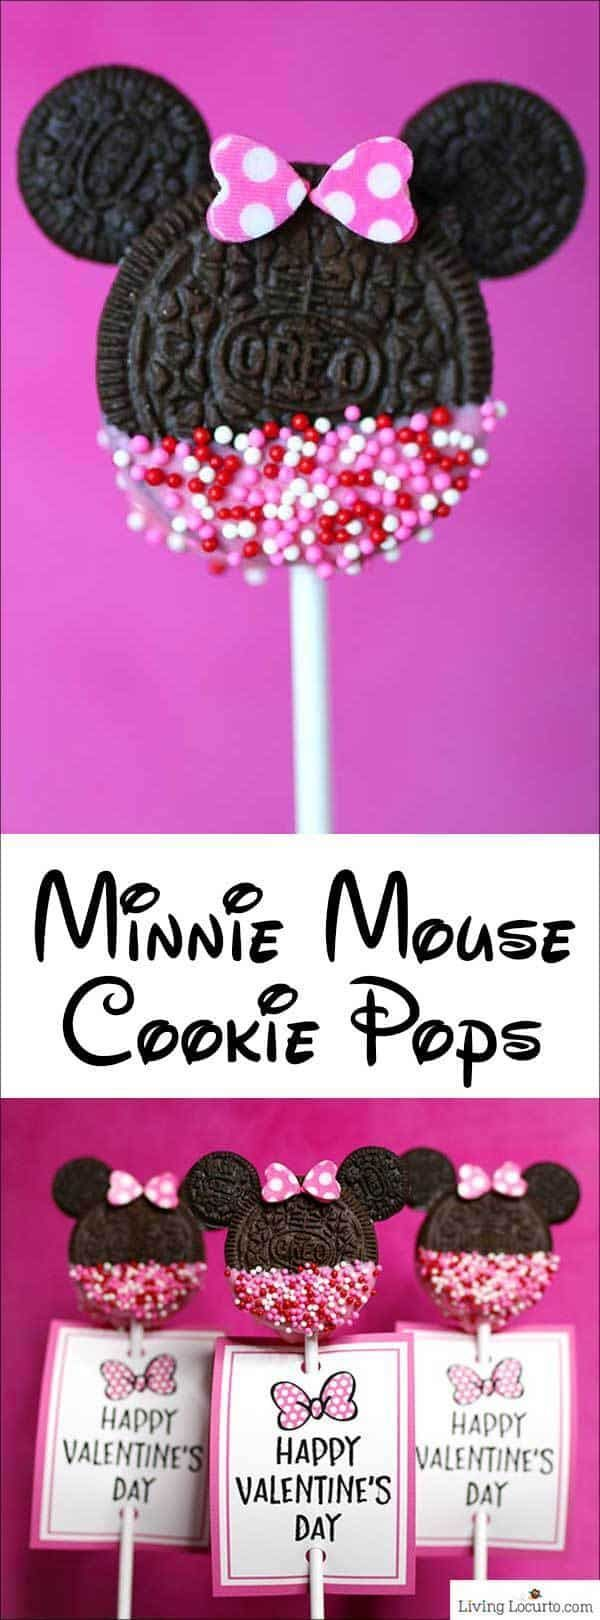 Minnie Mouse Cookie Pops - No Bake Disney Cookies - Living Locurto